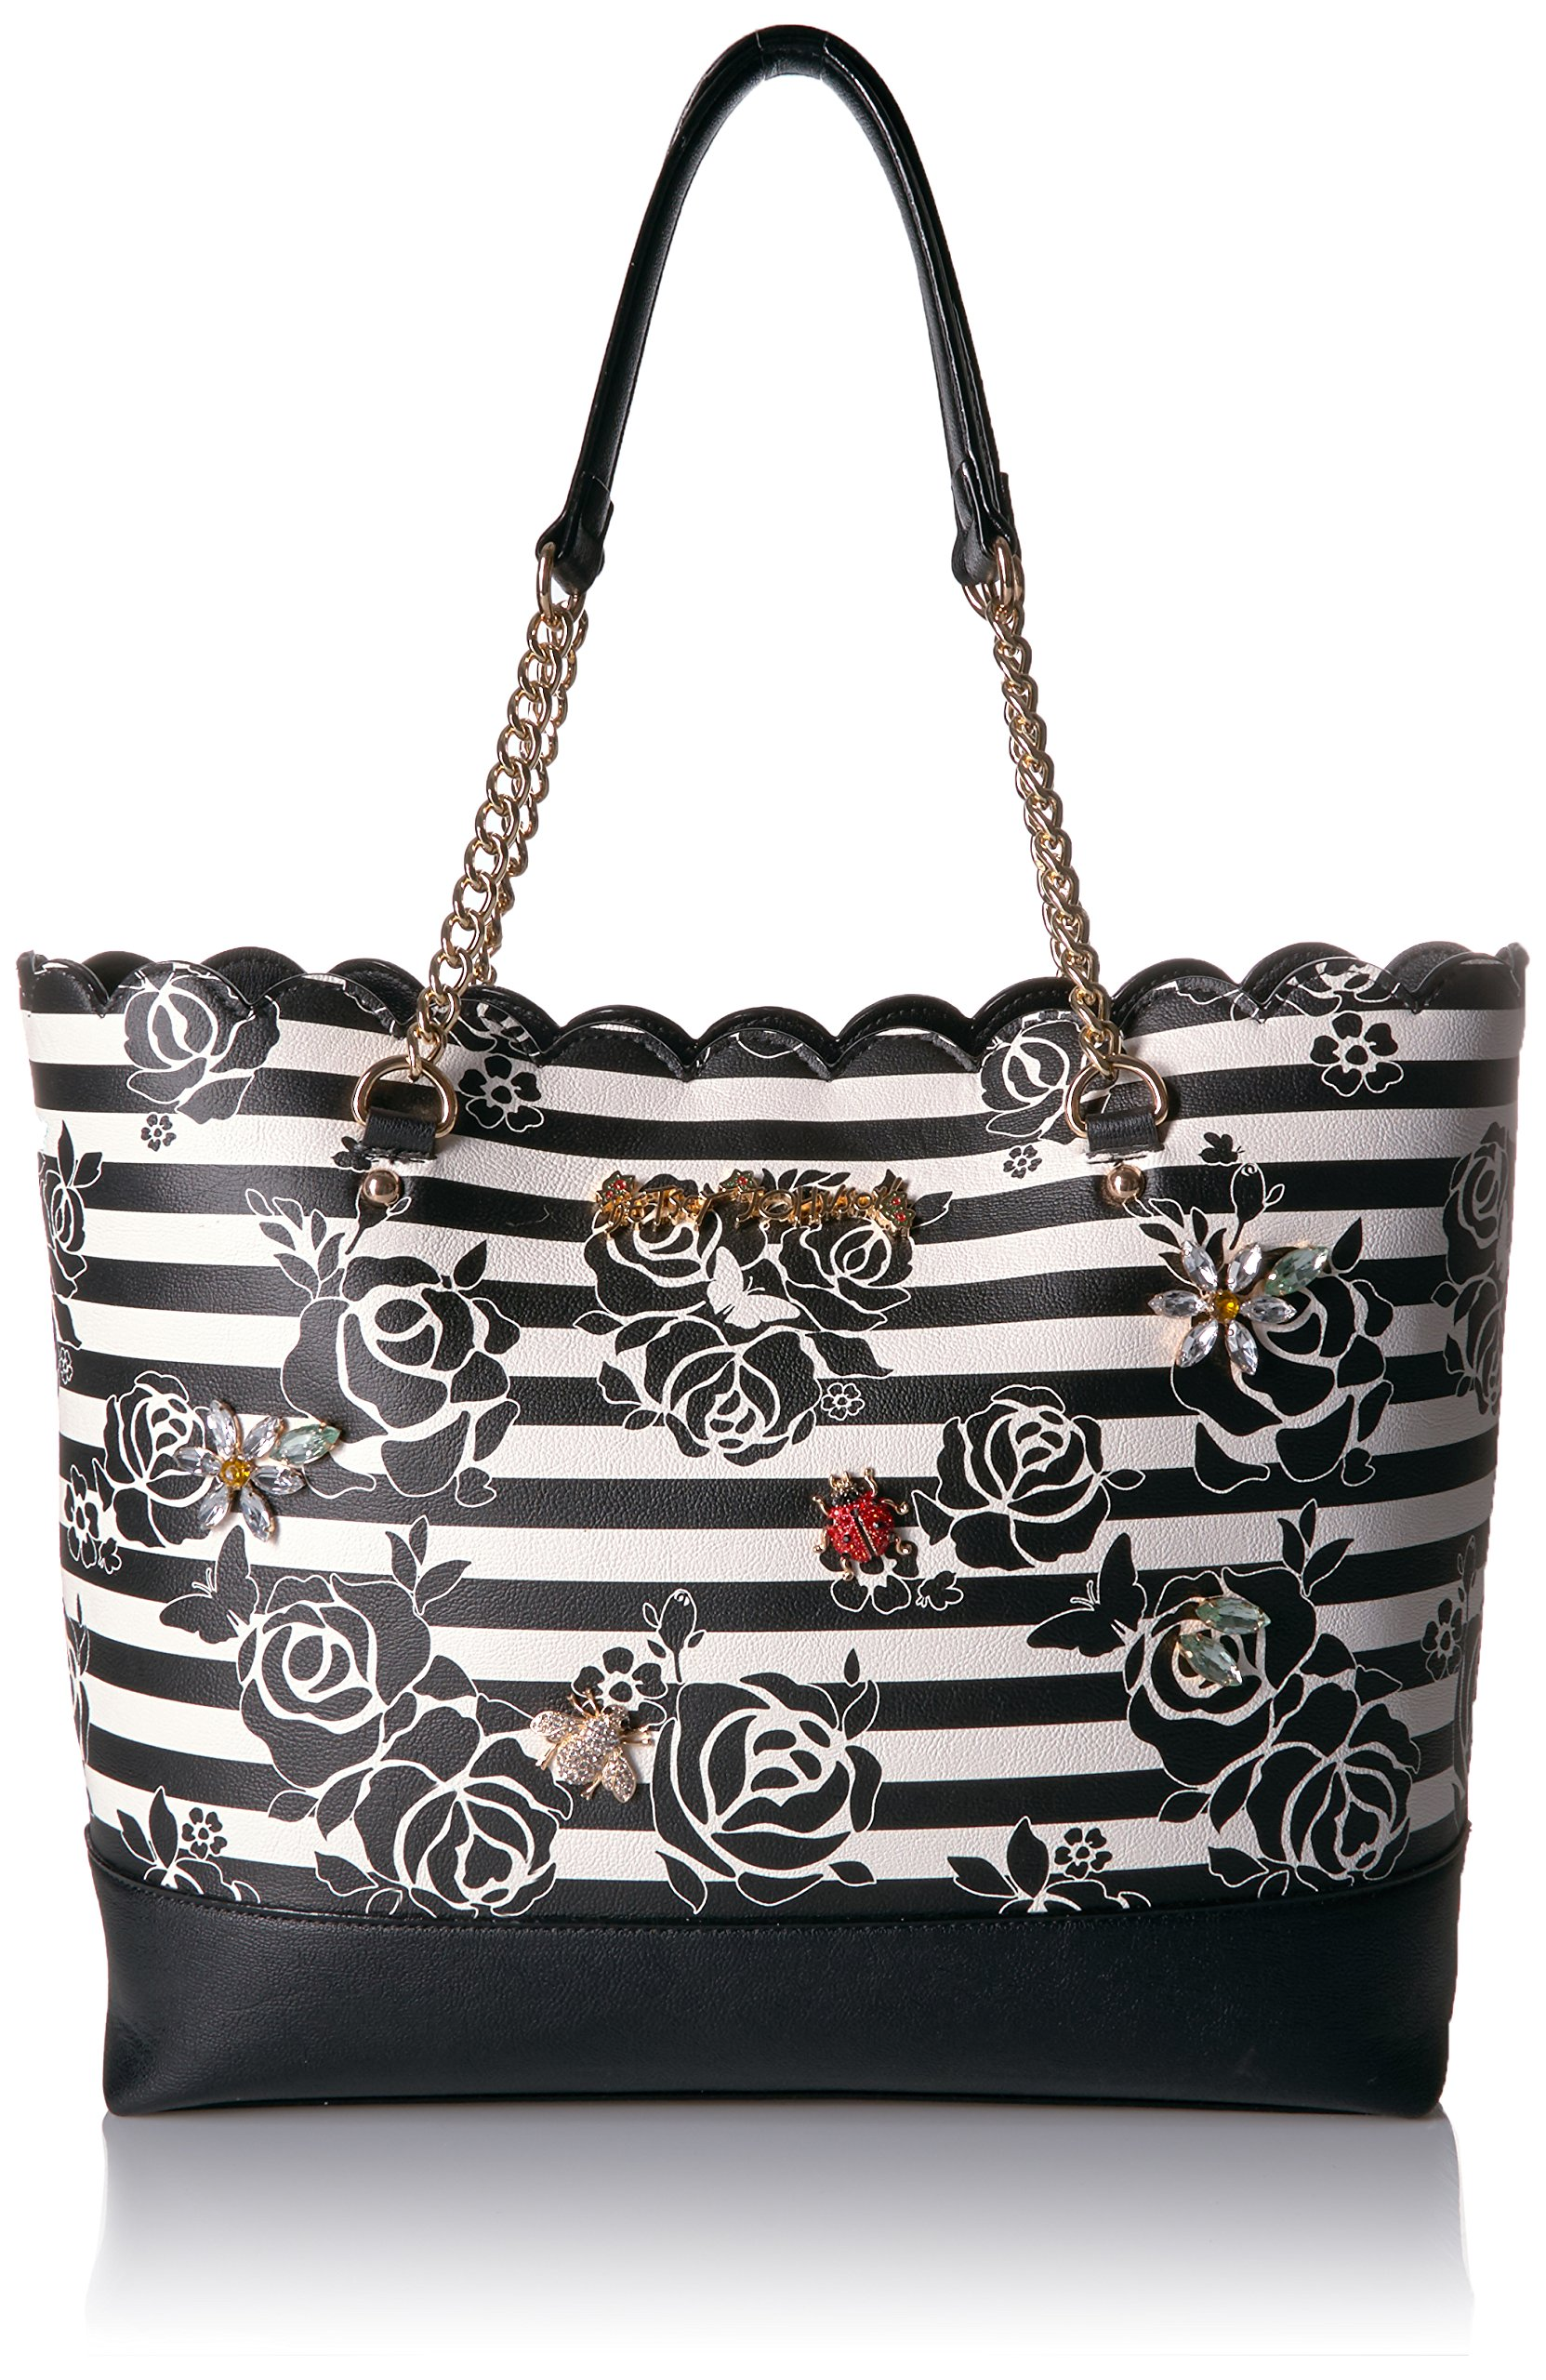 Betsey Johnson Glam Garden Tote, Multi